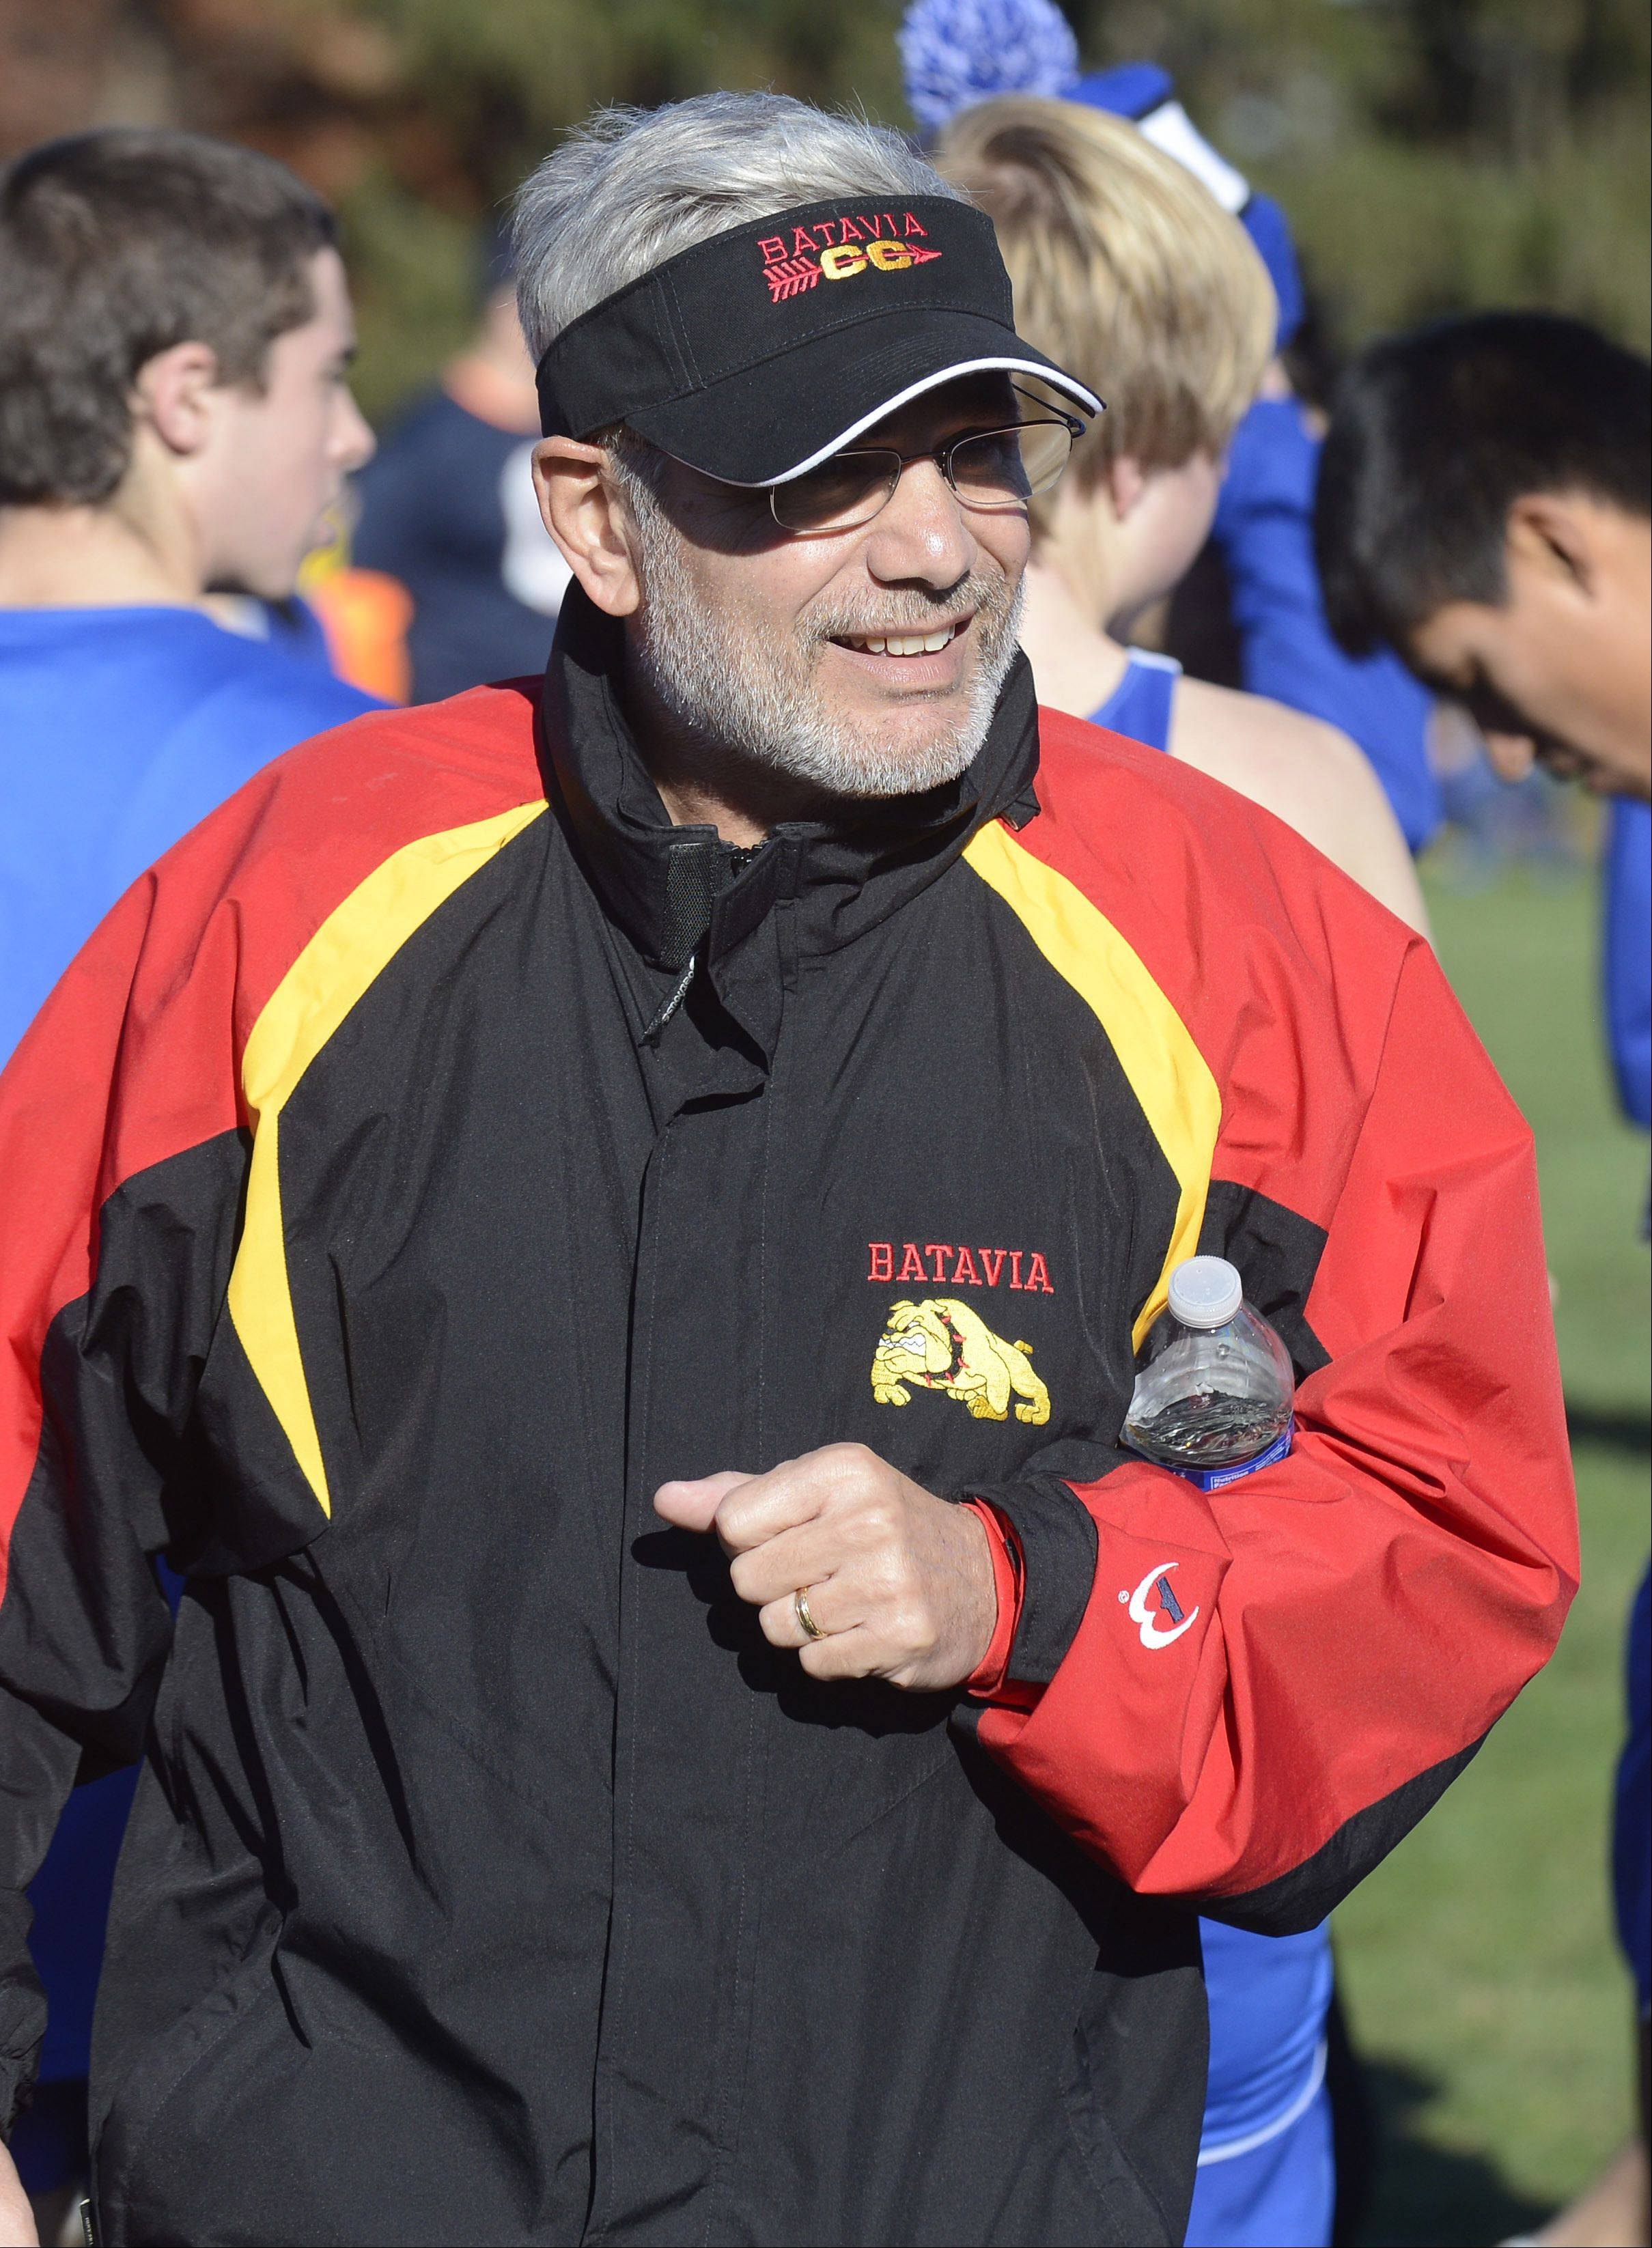 Batavia coach Mike DiDomenico is retiring after 34 years of coaching. He brought the Bulldogs to the state meet for the first time in the school's history on Saturday, November 9.